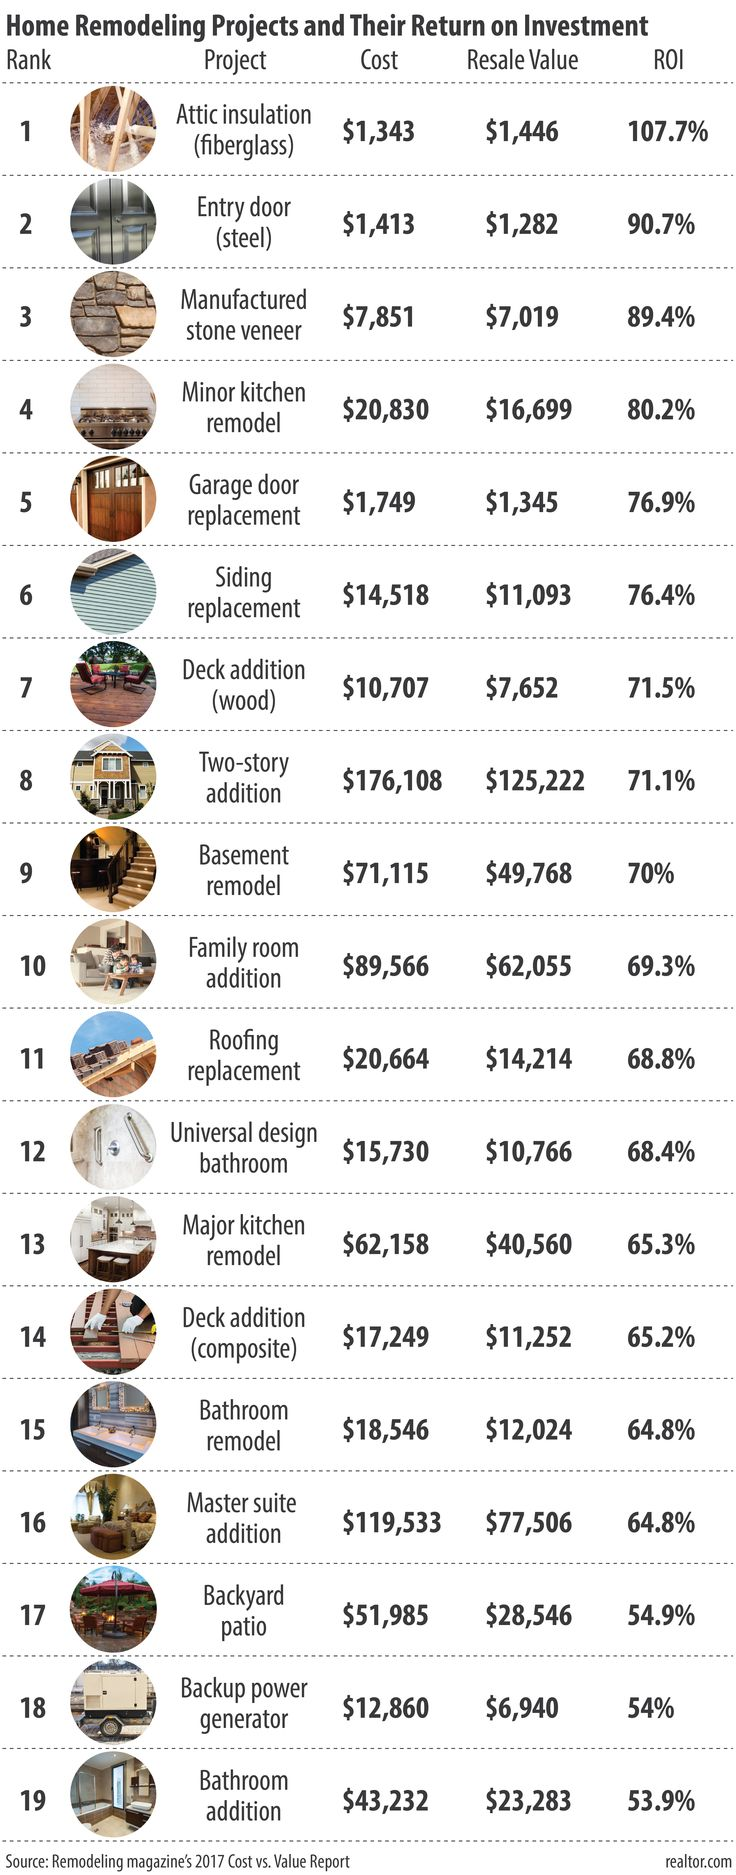 Thinking of renovating your home this year? These are the home renovation investments that will bring you the most return for your money. Remodel smart!